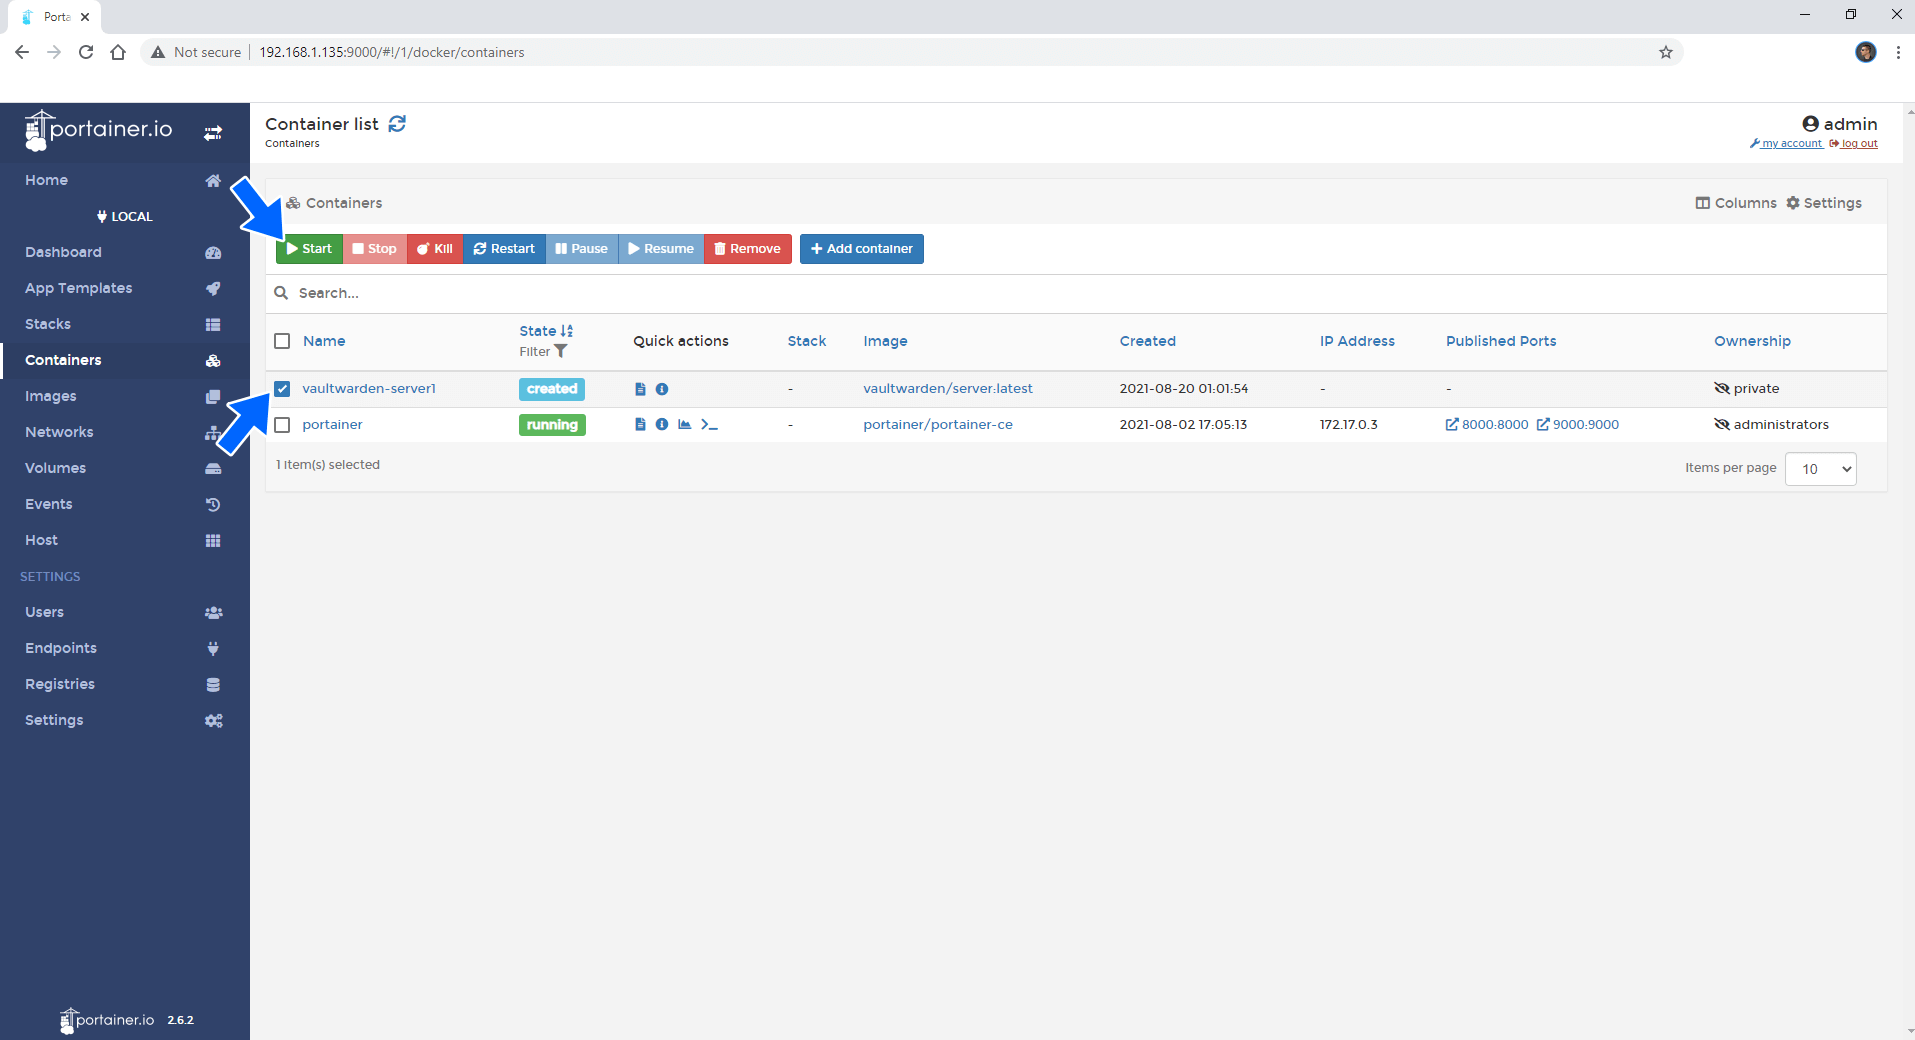 Synology update docker container using Portainer 6